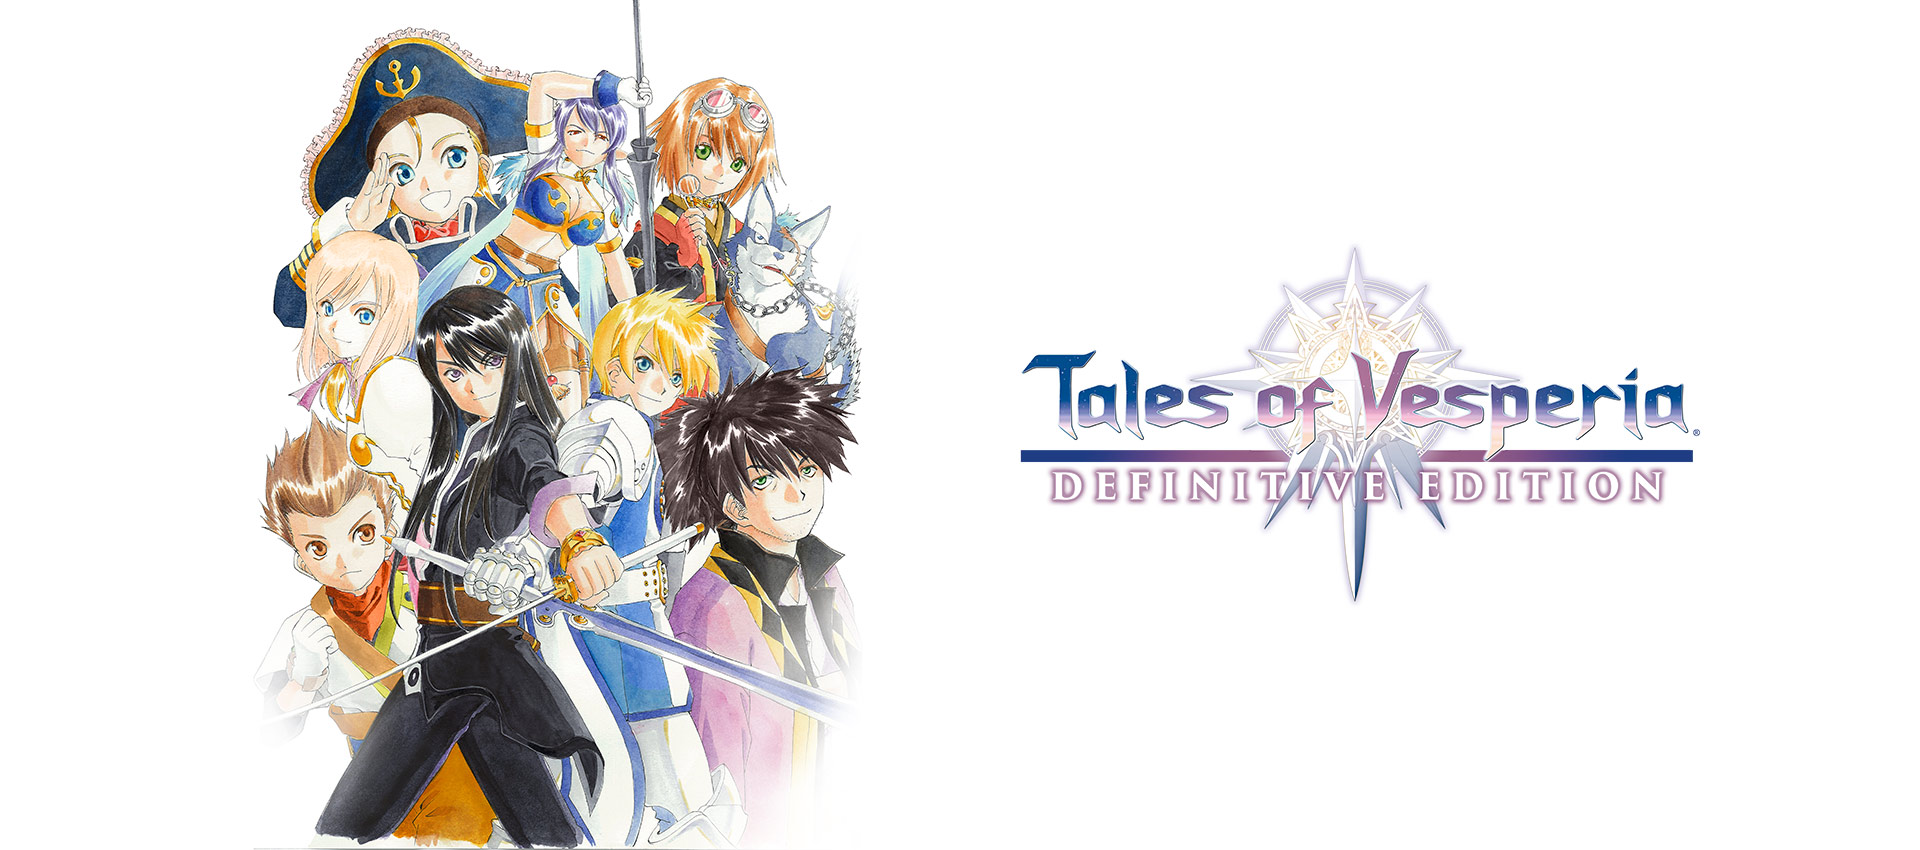 Tales of Vesperia: Definitive Edition - Um grupo de personagens jogáveis